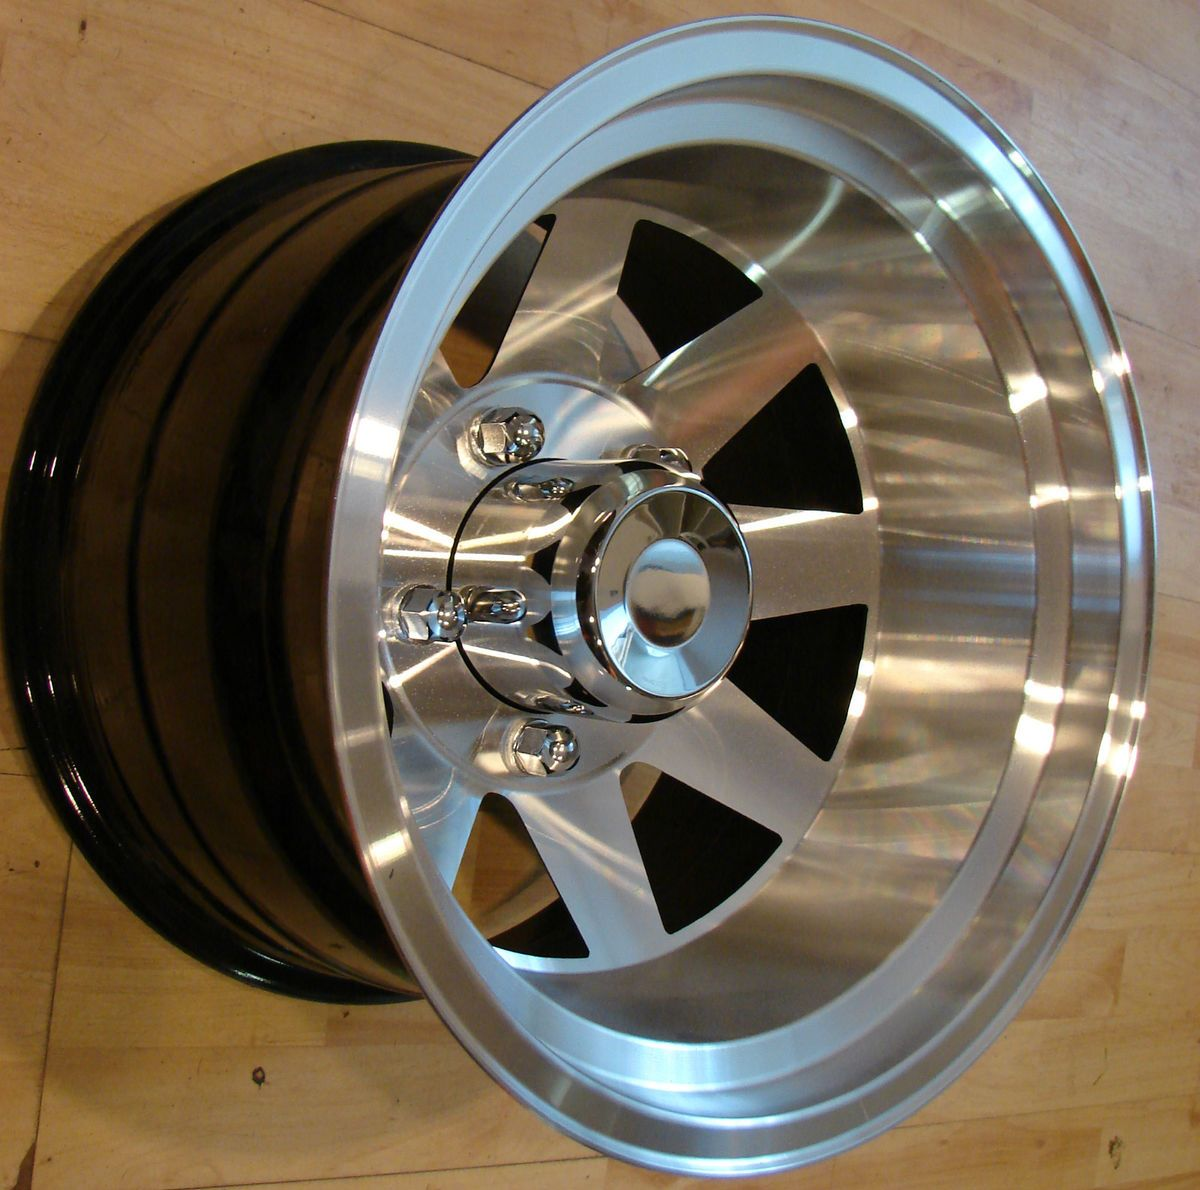 15x10 Aluminum Jackman Style Wheels Rims Mags 5x5 5 Ford Bronco F 150 Jeep Cj5 With Images Ford Bronco Wheel Rims Jeep Cj5